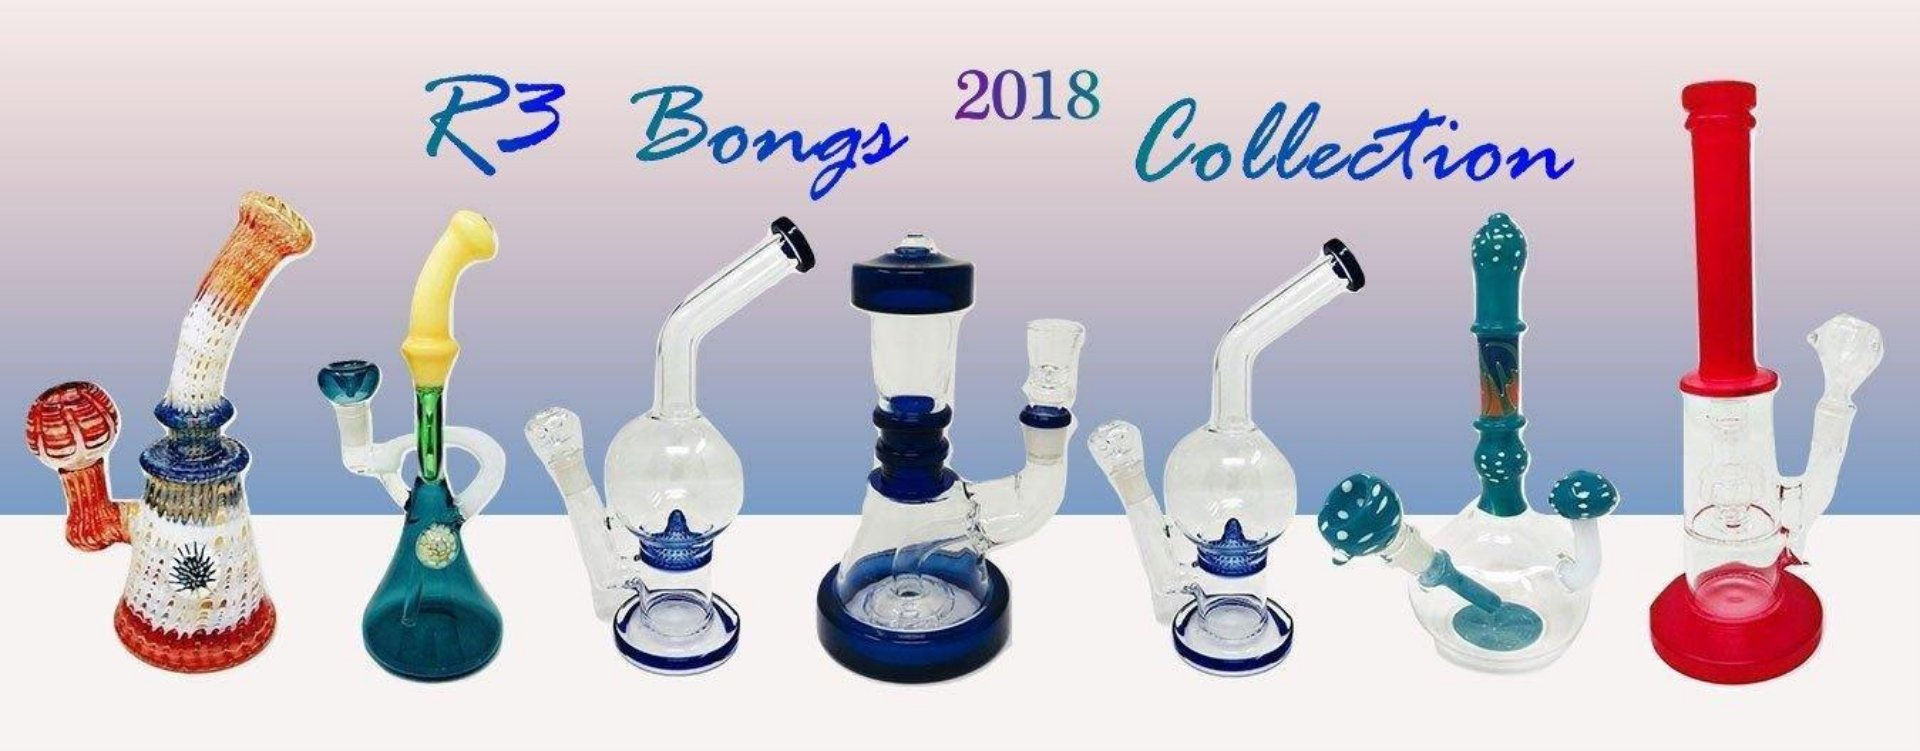 R3 Bongs Slider Banner